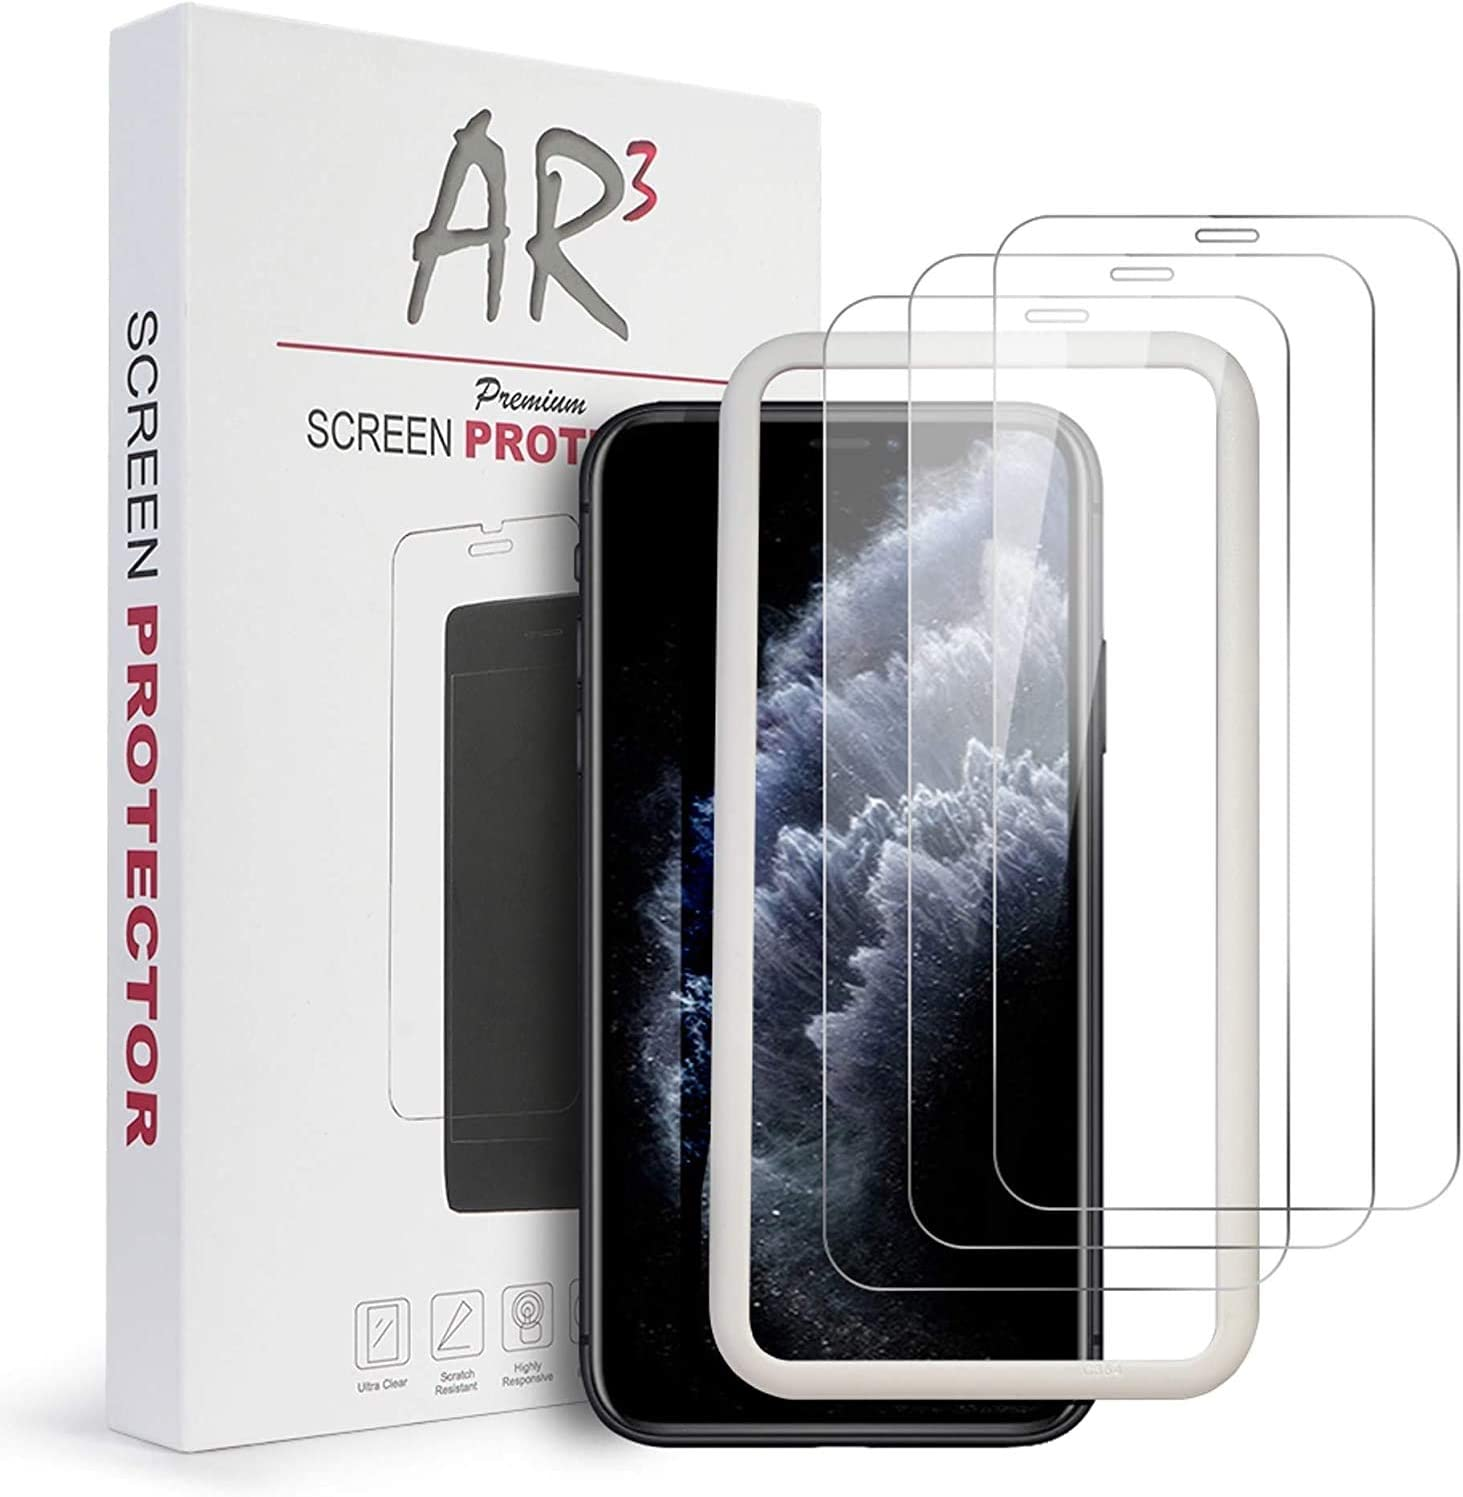 "AR3 Tempered Glass 2.5D Ultra Clear Case Friendly Screen Protector with Easy Install Frame Tool Kit for iPhone 11 Pro Max, iPhone XS Max (6.5"") - 3 Pack - Retail Packaging"